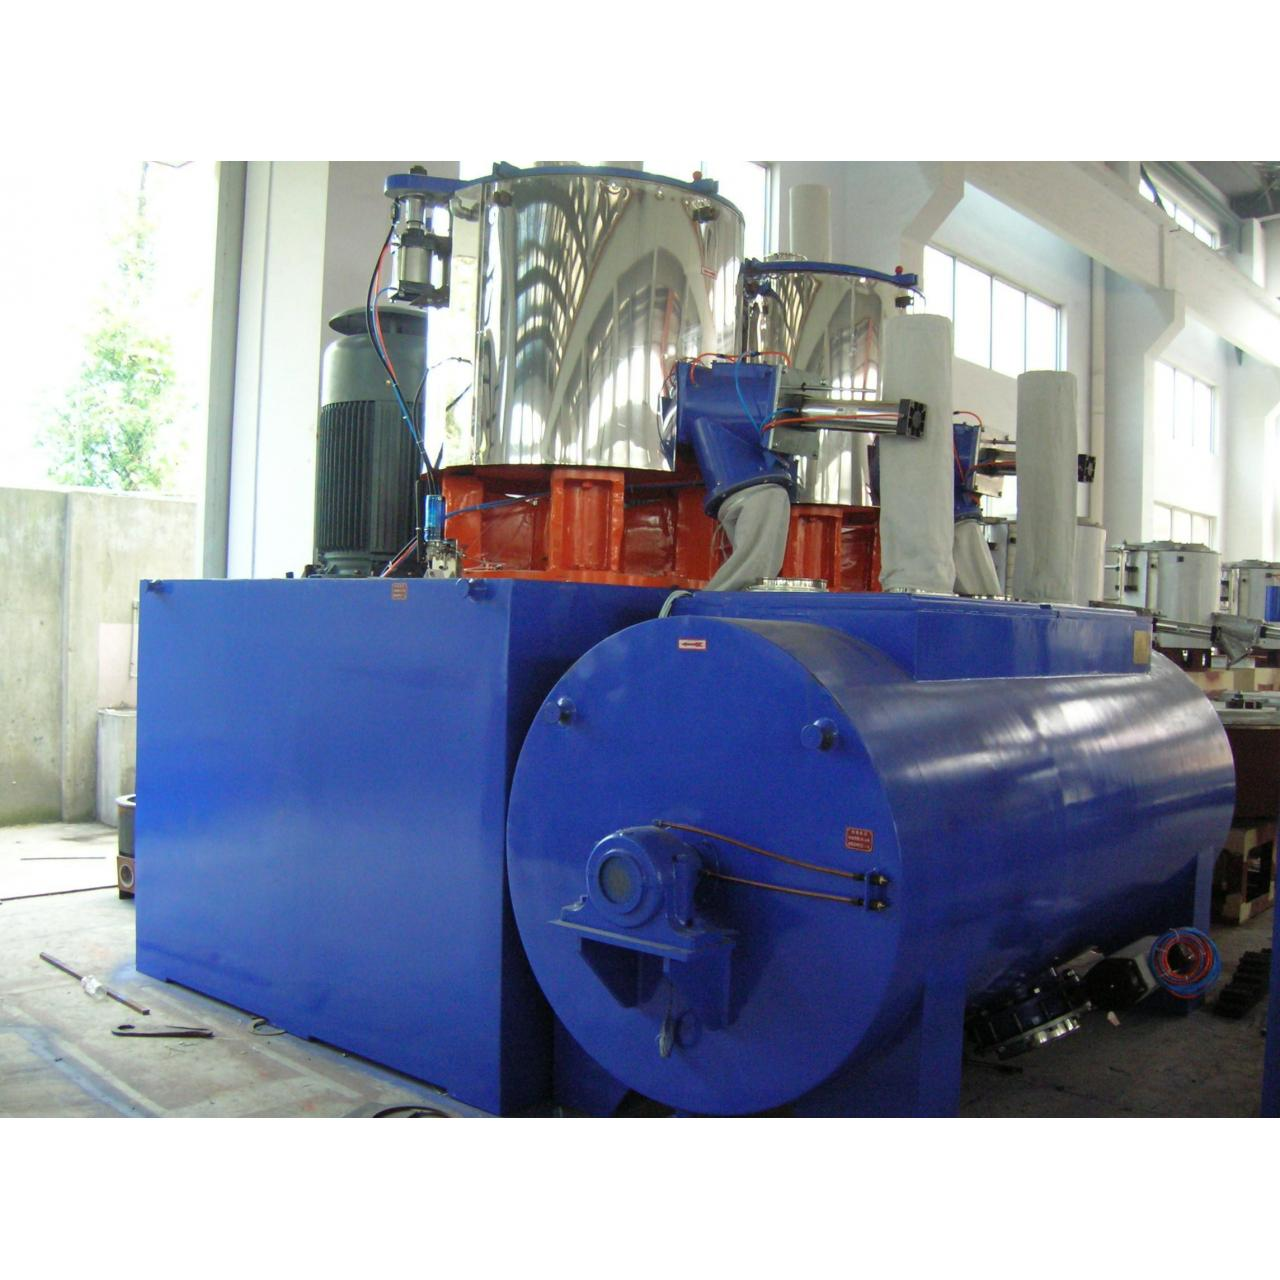 Pipe Extrusion Equipment Mixer Uint